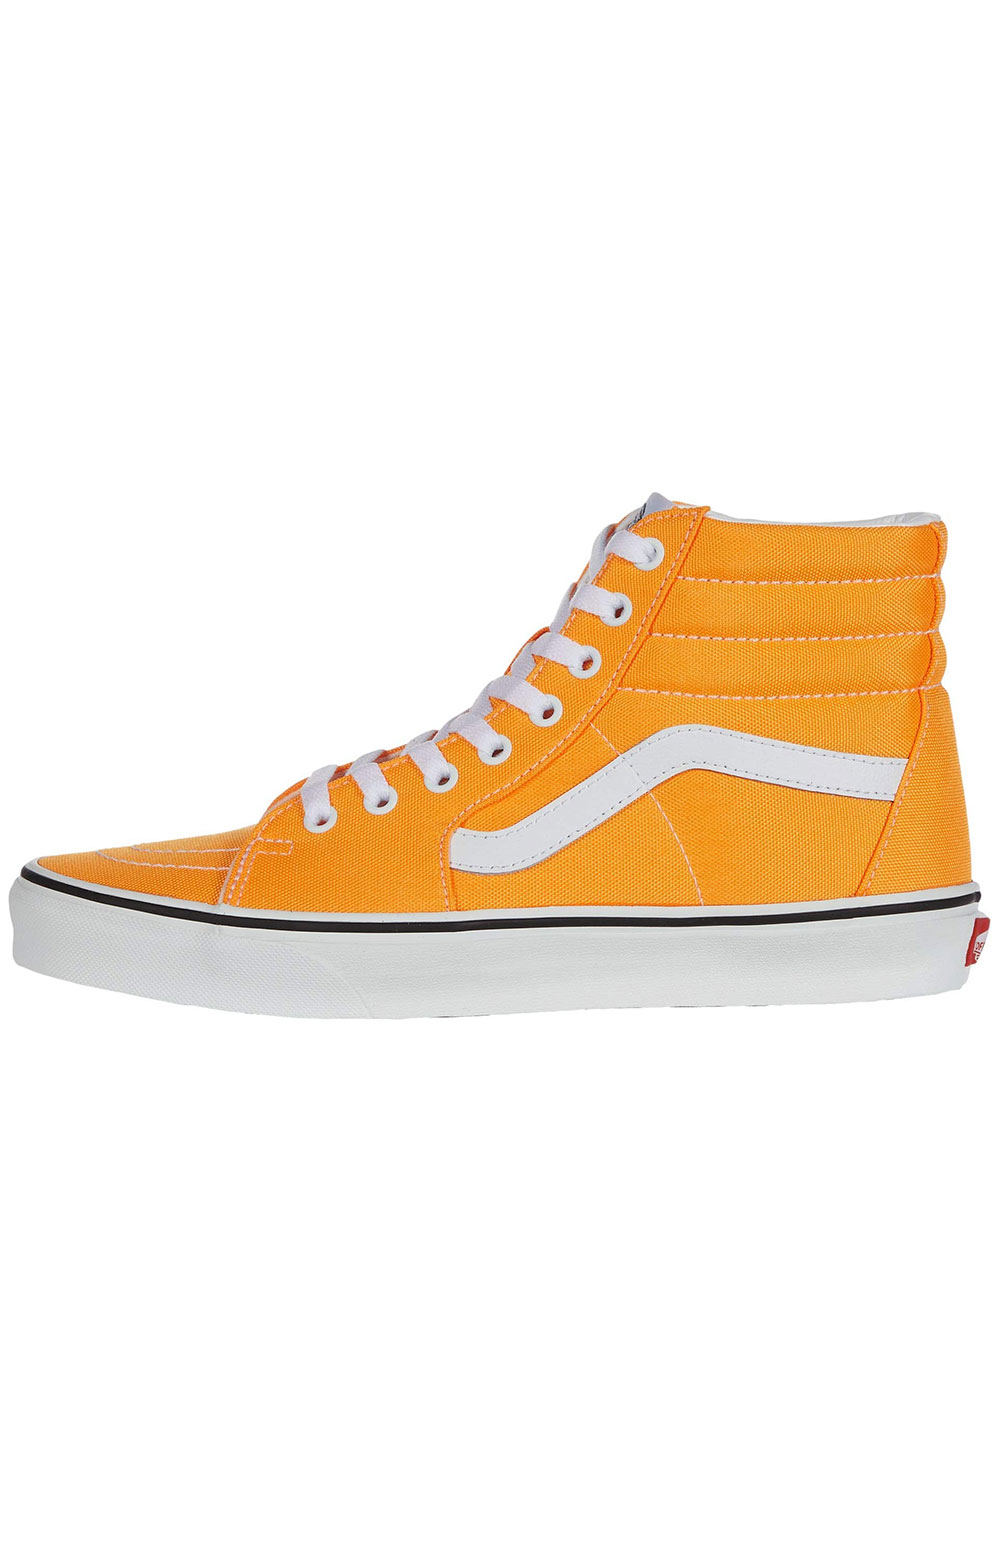 (U3CWT4) Neon Sk8-Hi Shoes - Blazing Orange  5